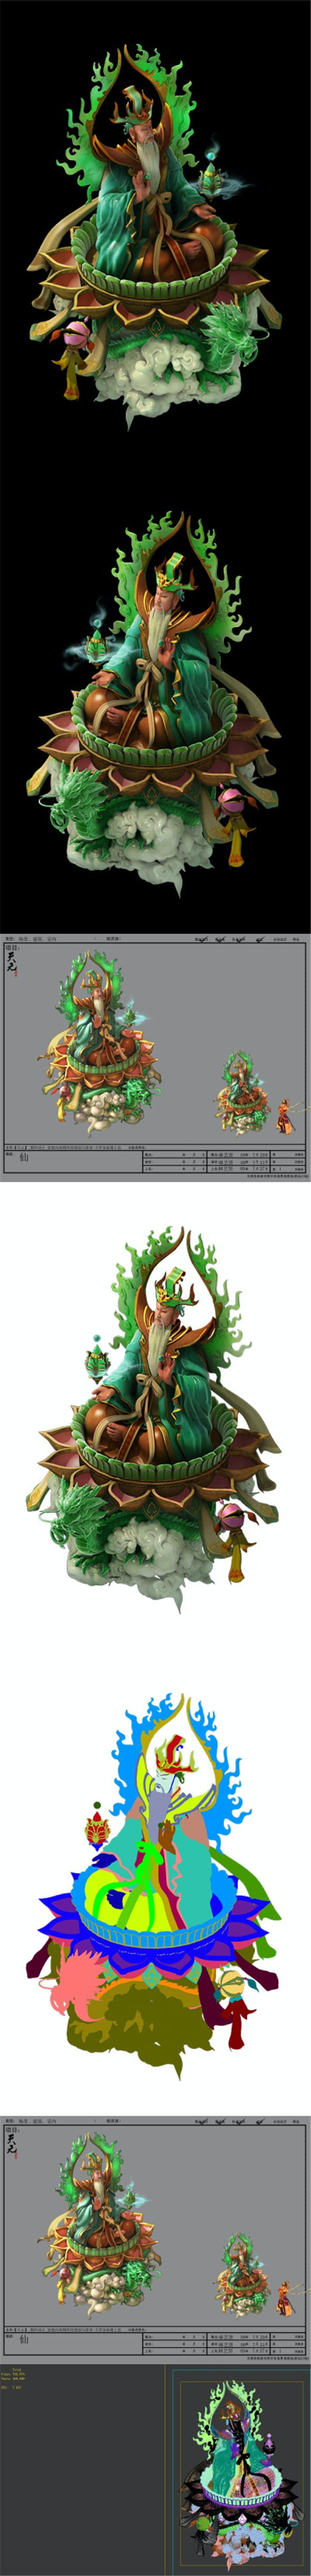 Game Model - In-house Objects - Big Golden Fairy - 3DOcean Item for Sale